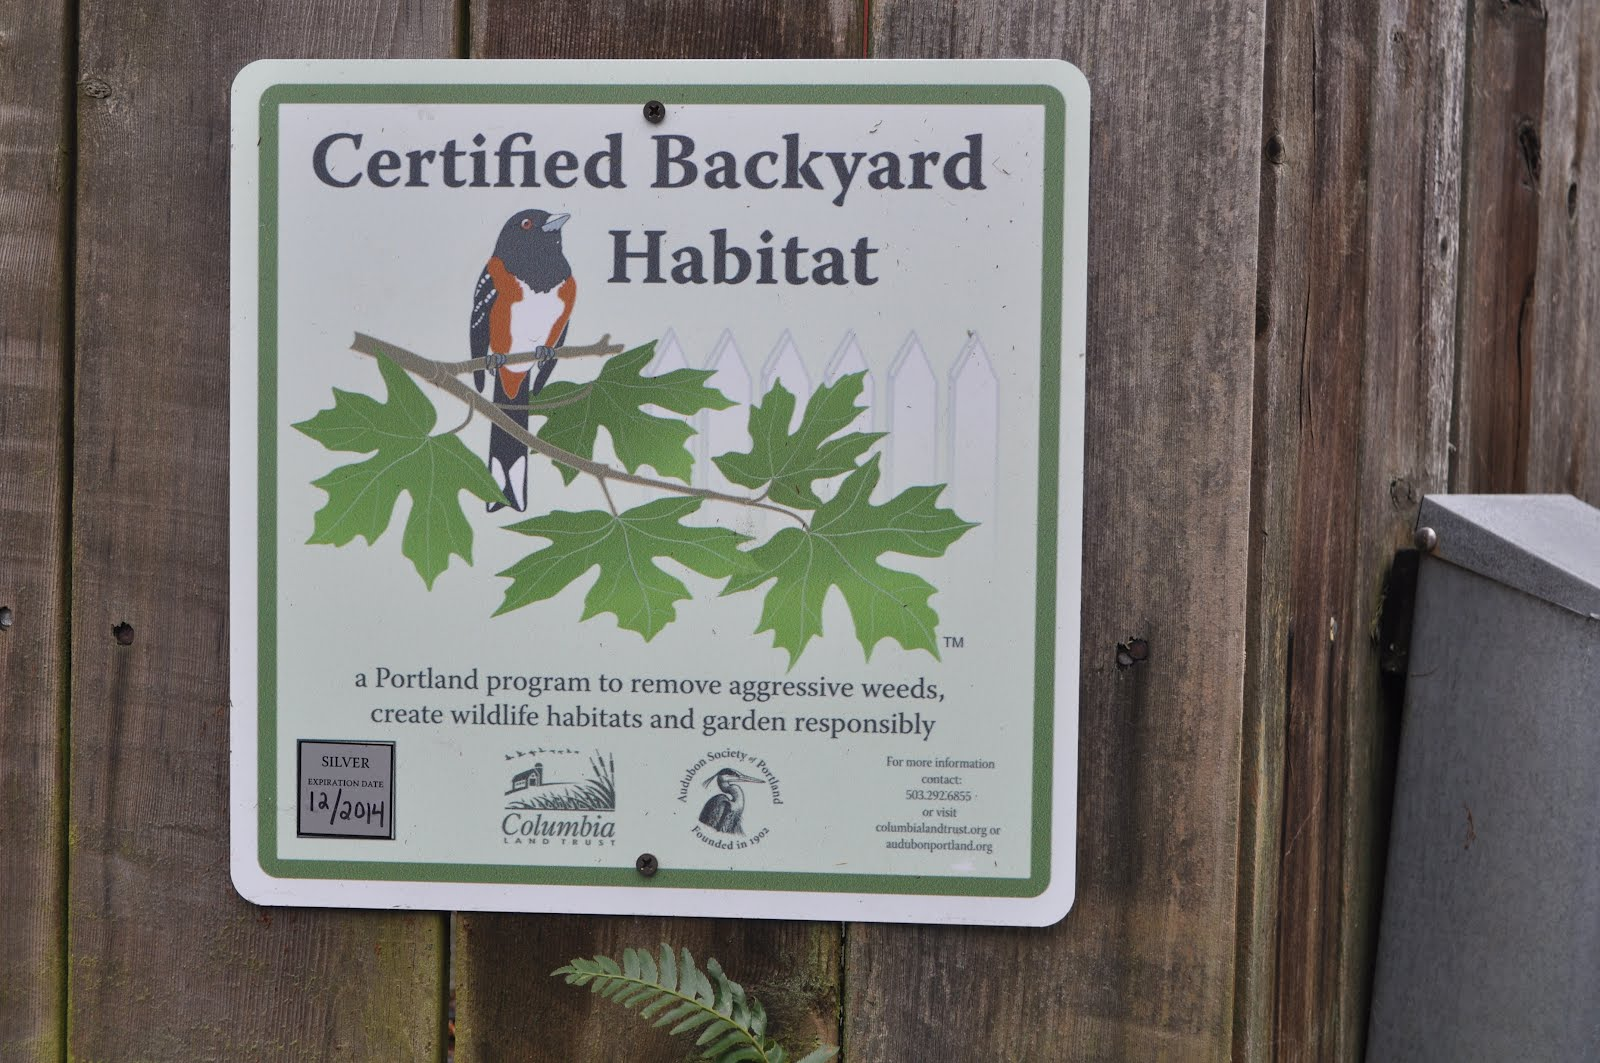 Certified Backyard Habitat stream of consciousness: backyard bird habitat certified!